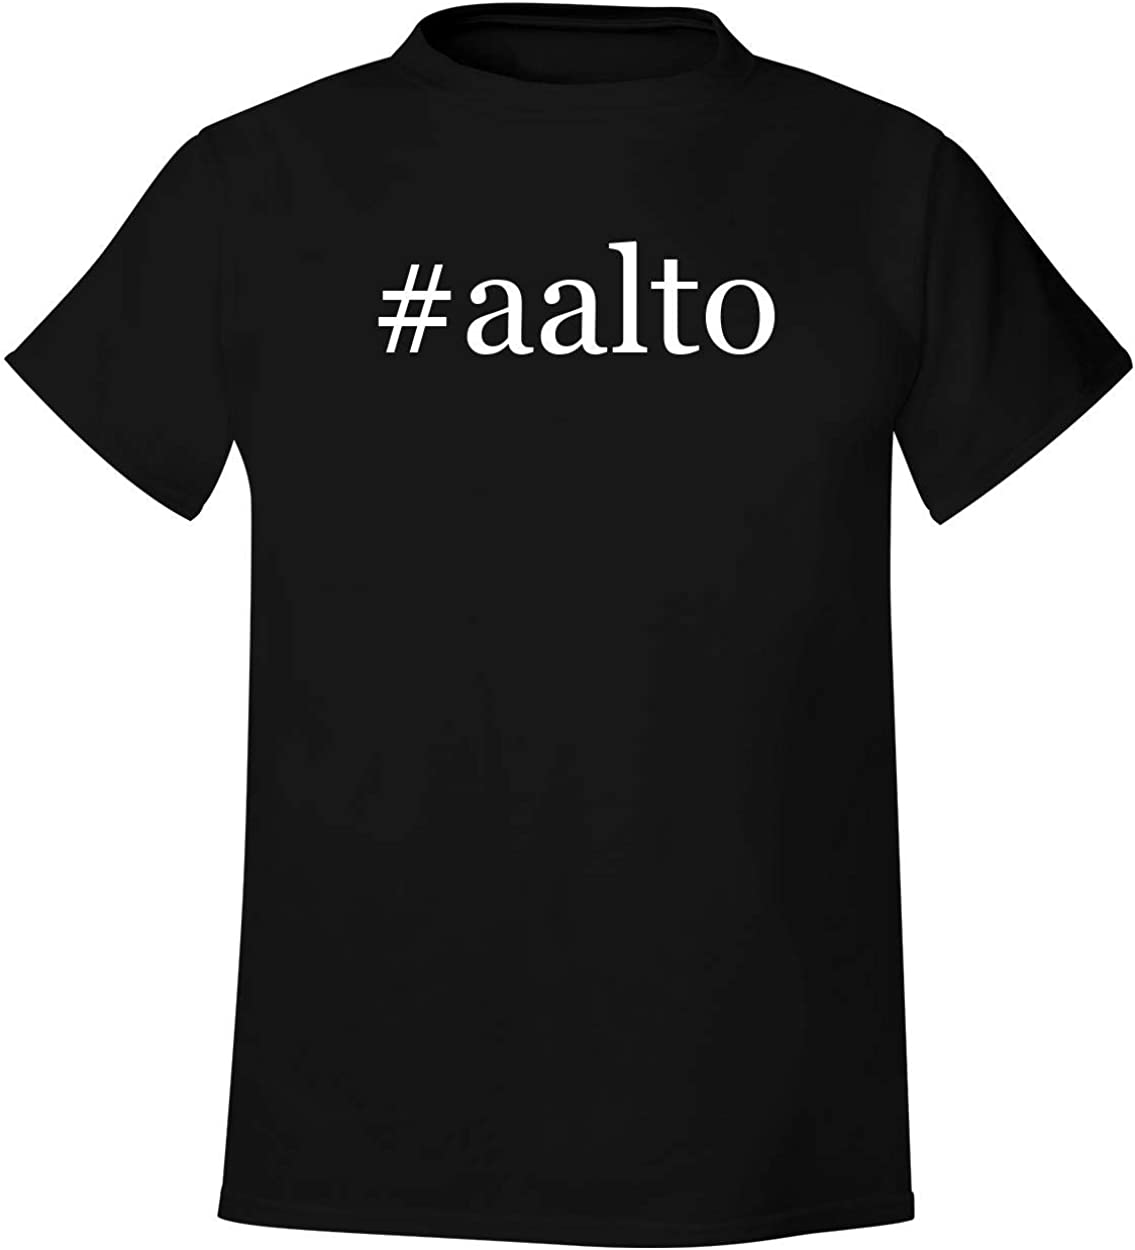 #aalto - Men's Soft & Comfortable T-Shirt 516fZ6LmIUL